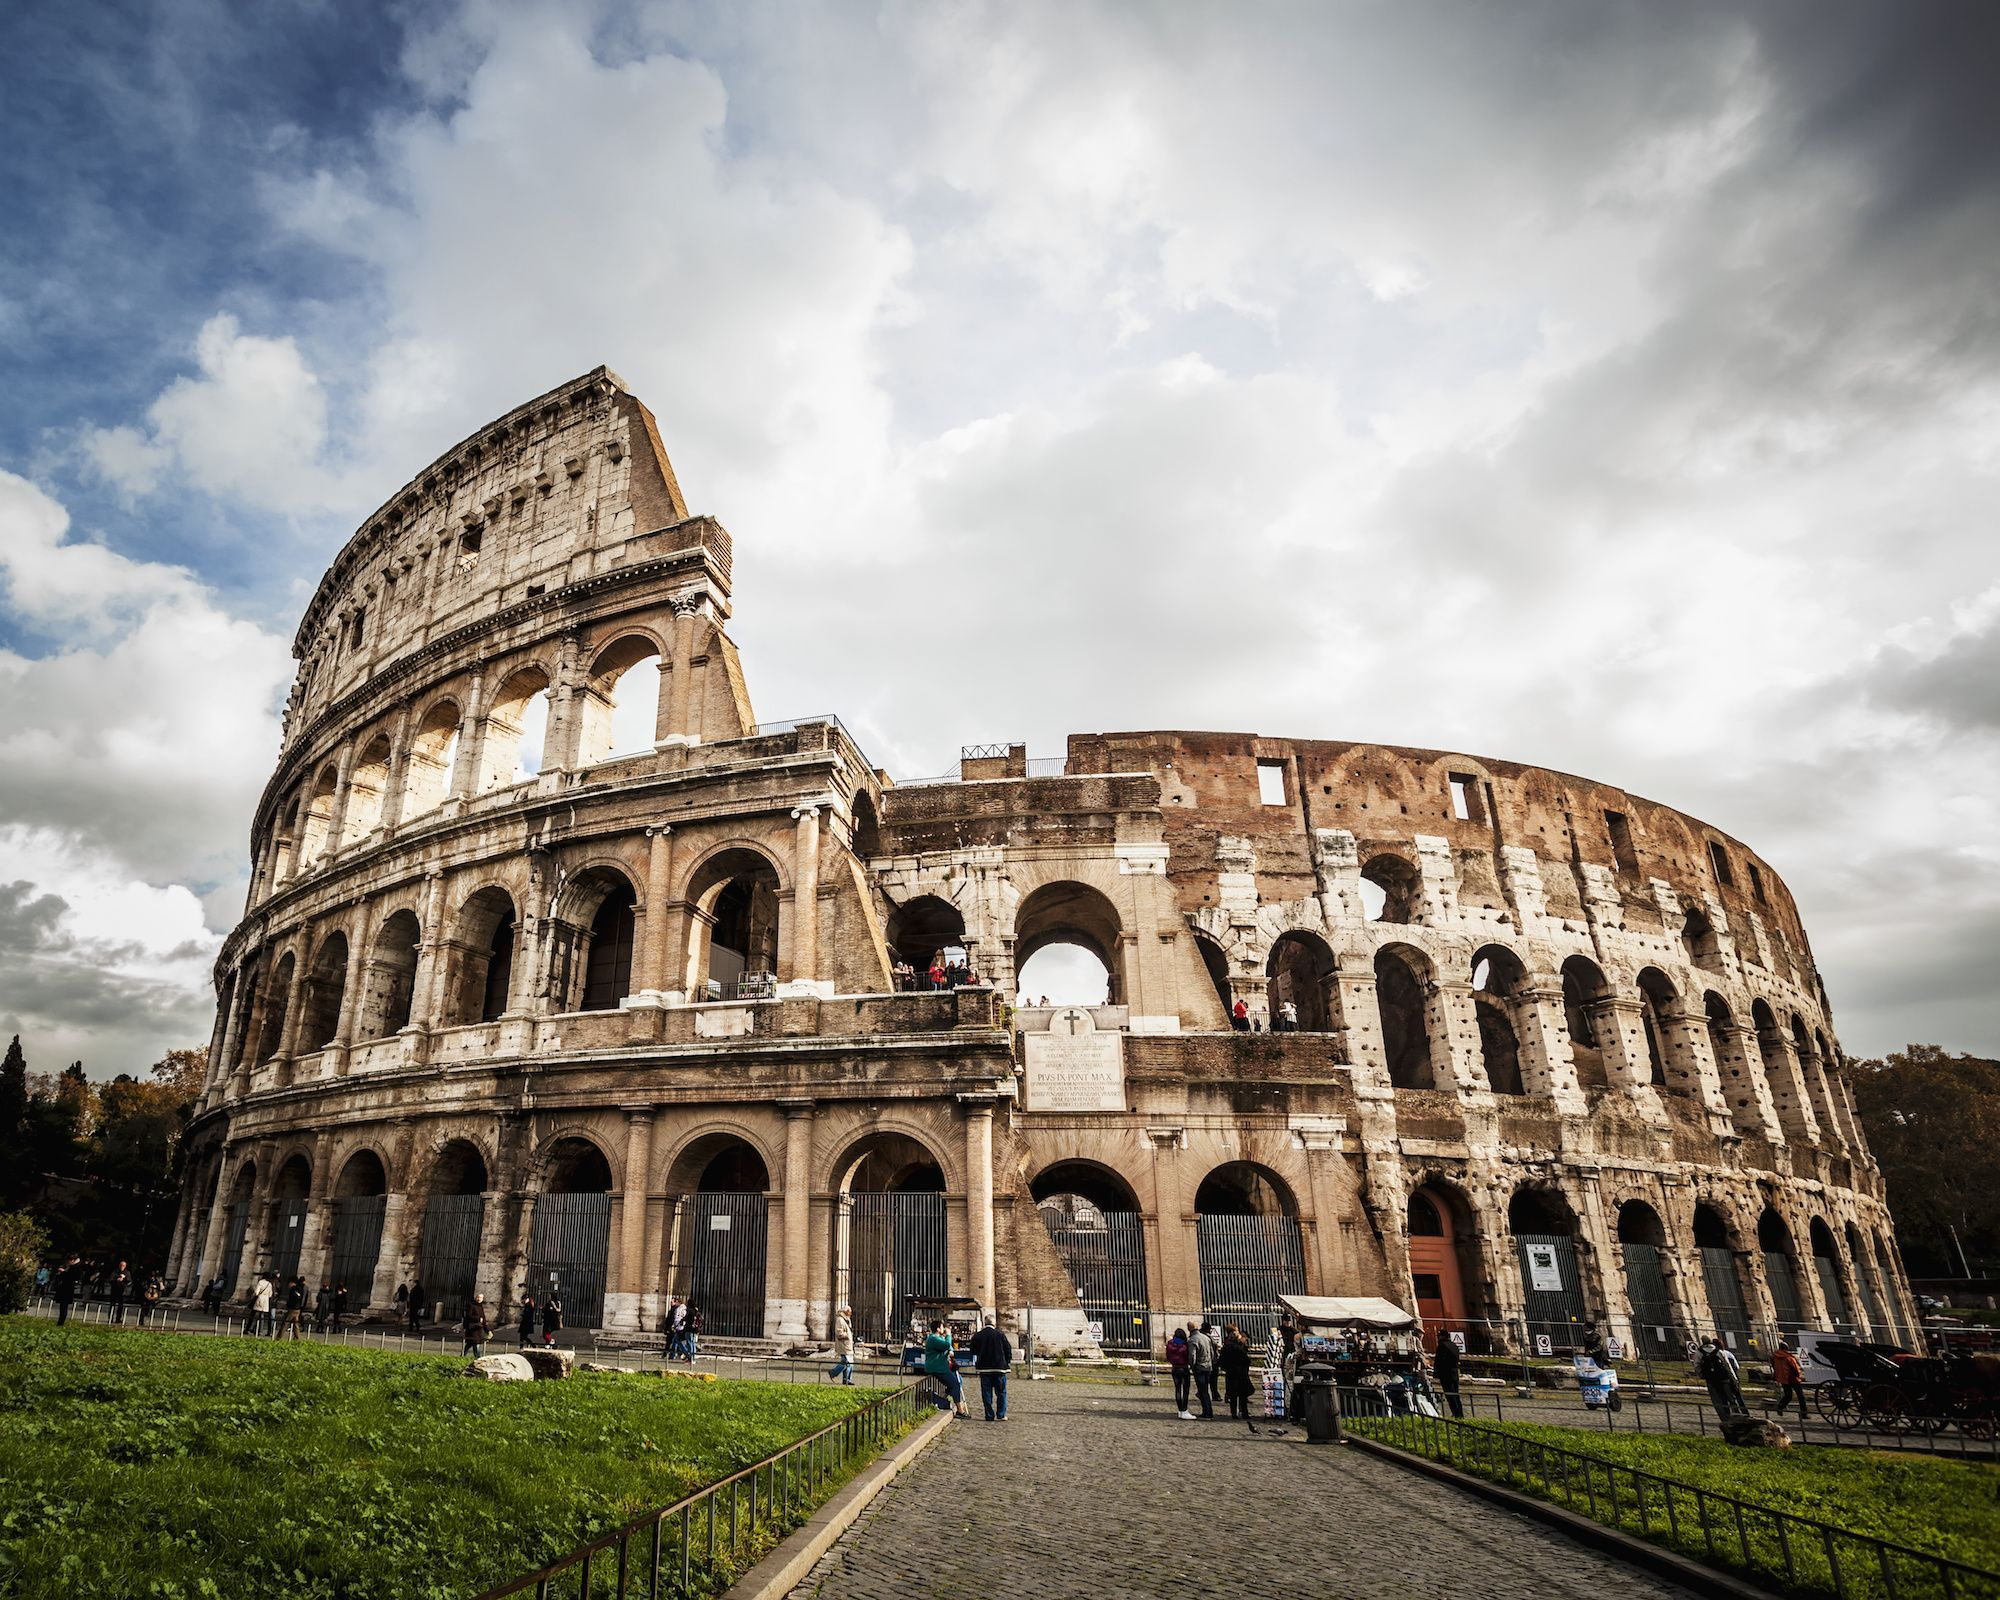 The Colosseum | National Geographic Society